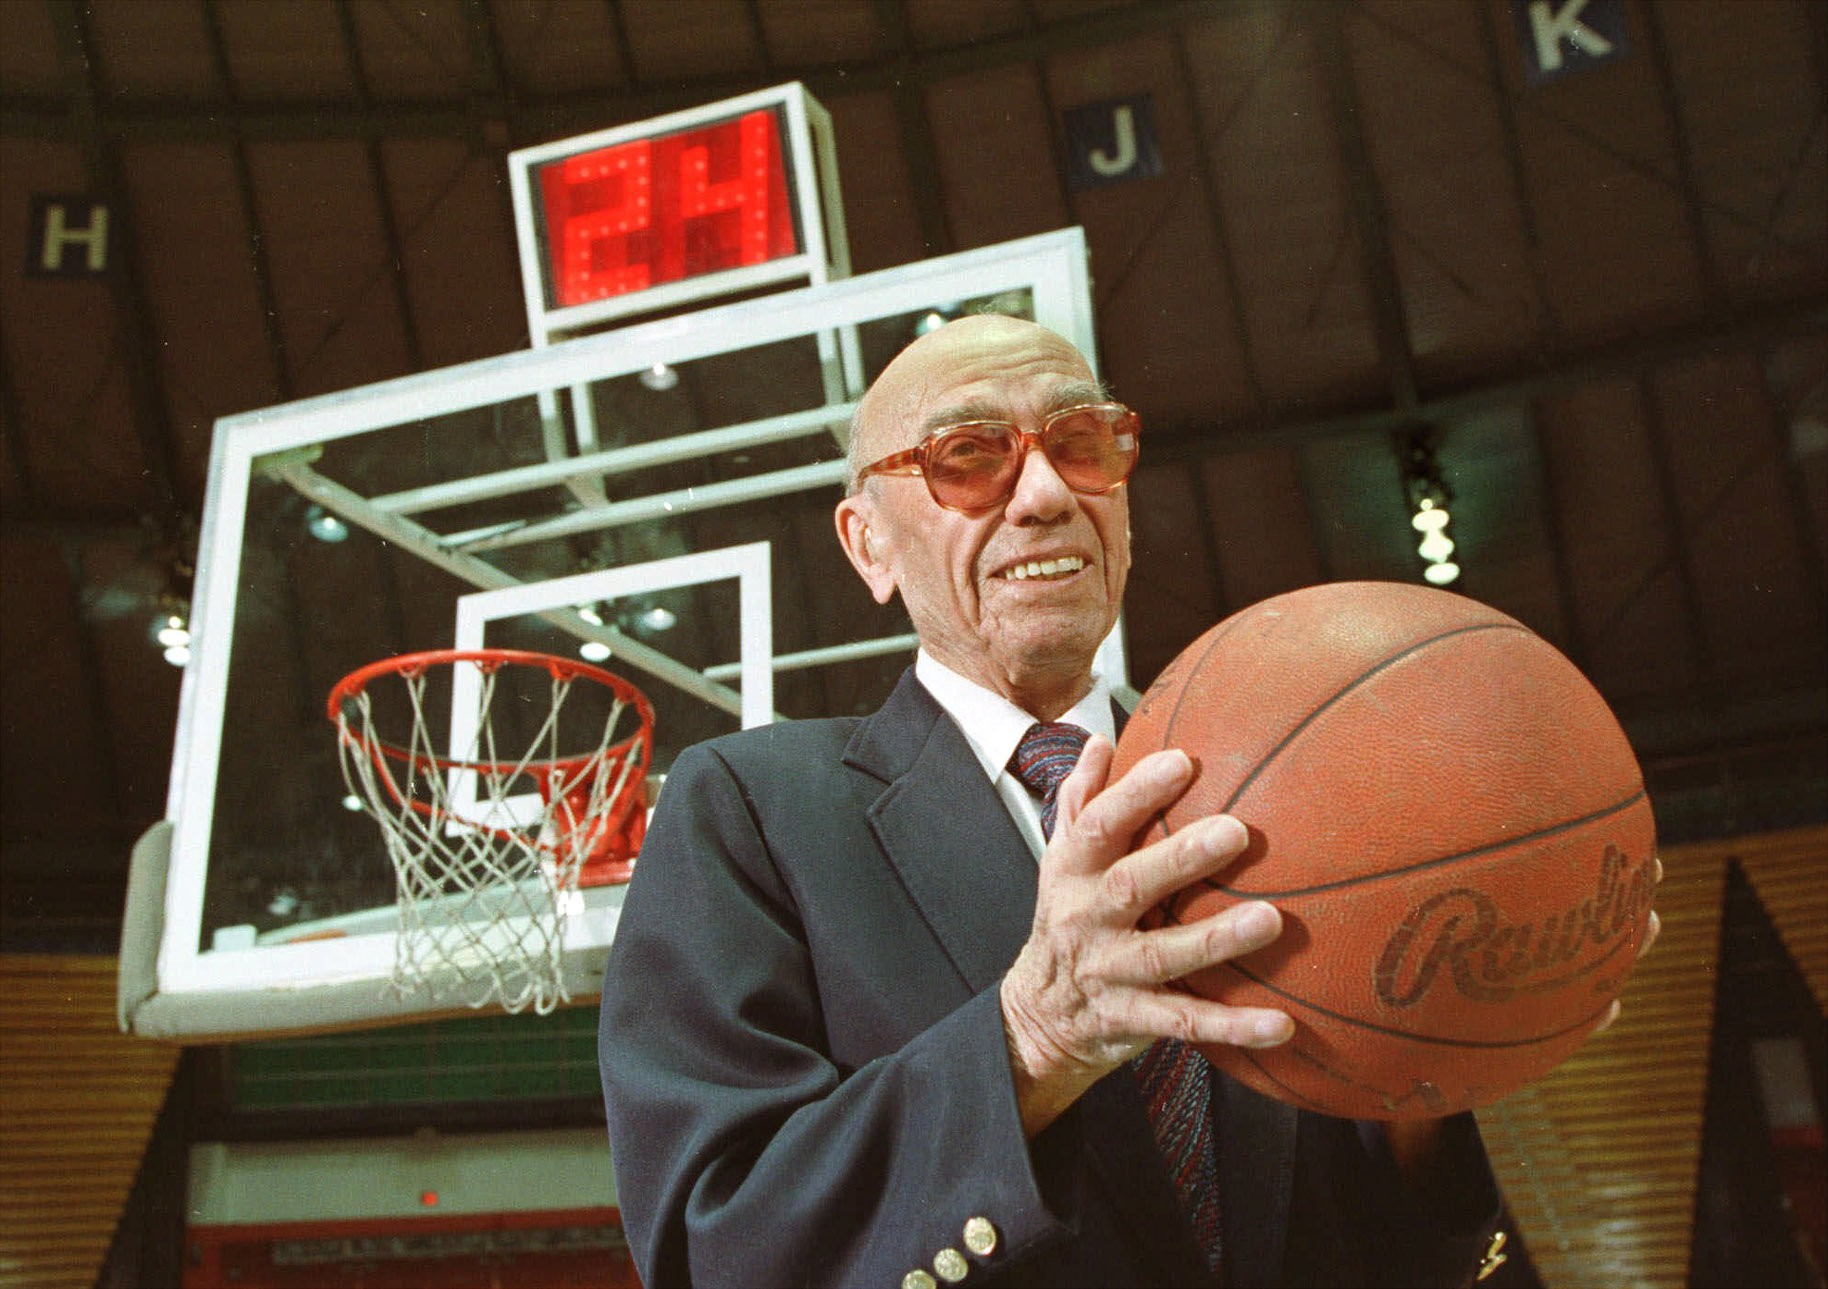 The late Danny Biasone, an innovator of the NBA's 24-second shot clock, is shown in this March 8, 1992 photograph at a gym at Syracuse University.